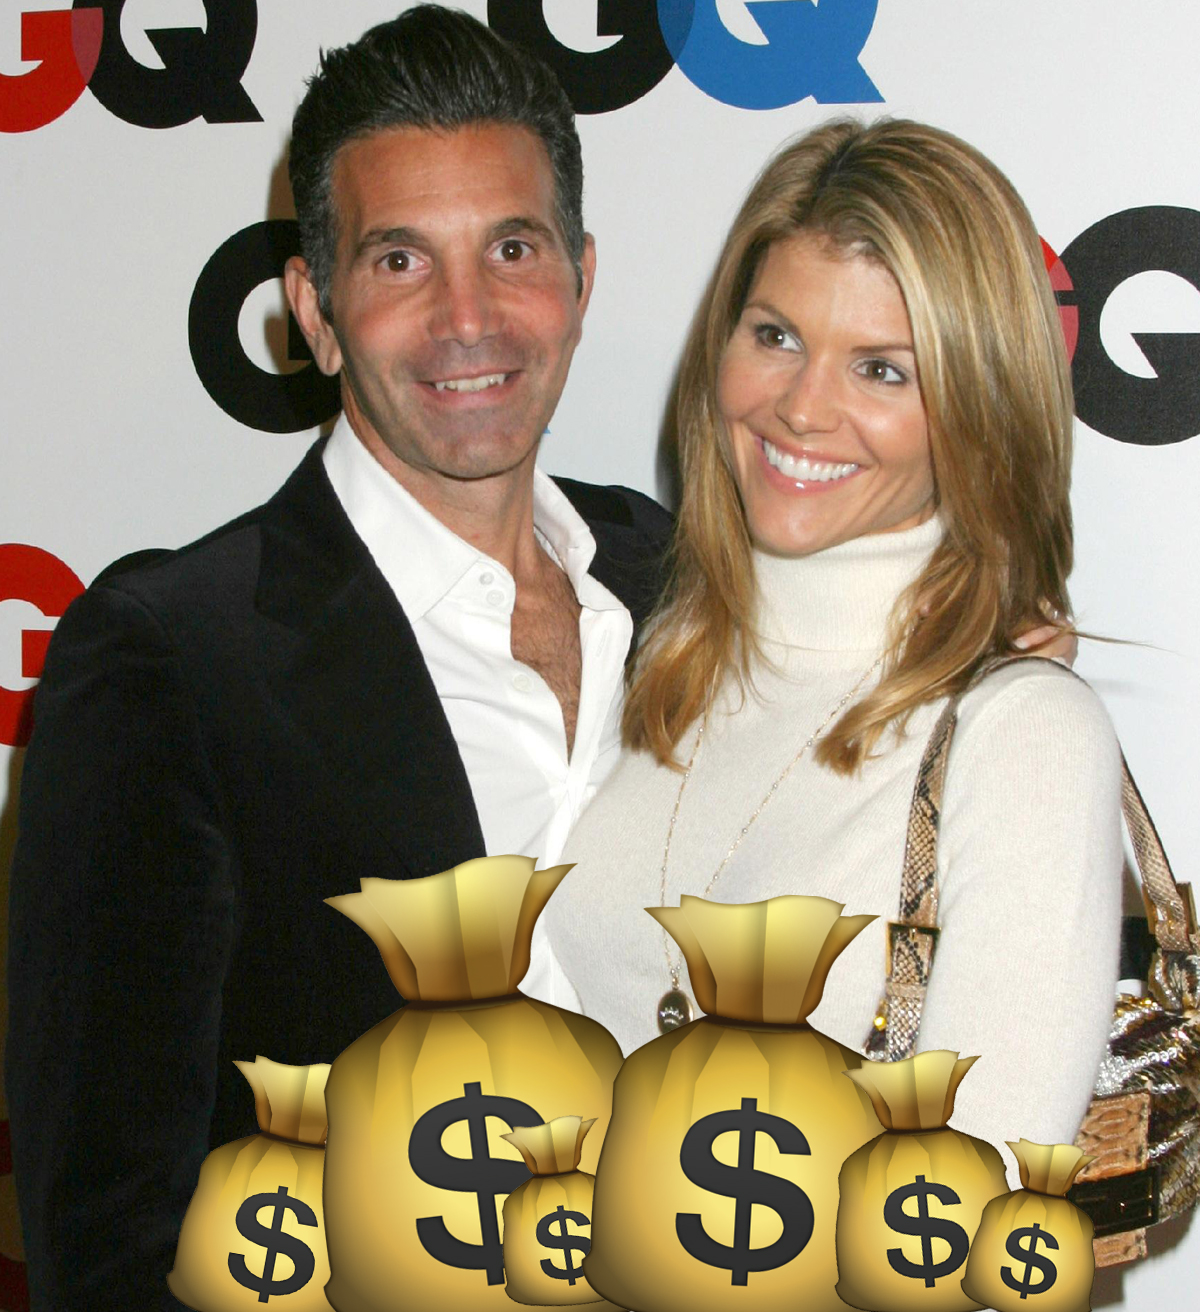 Lori Loughlin and Mossimo Giannulli are hoping to reduce their bail and bond amounts!